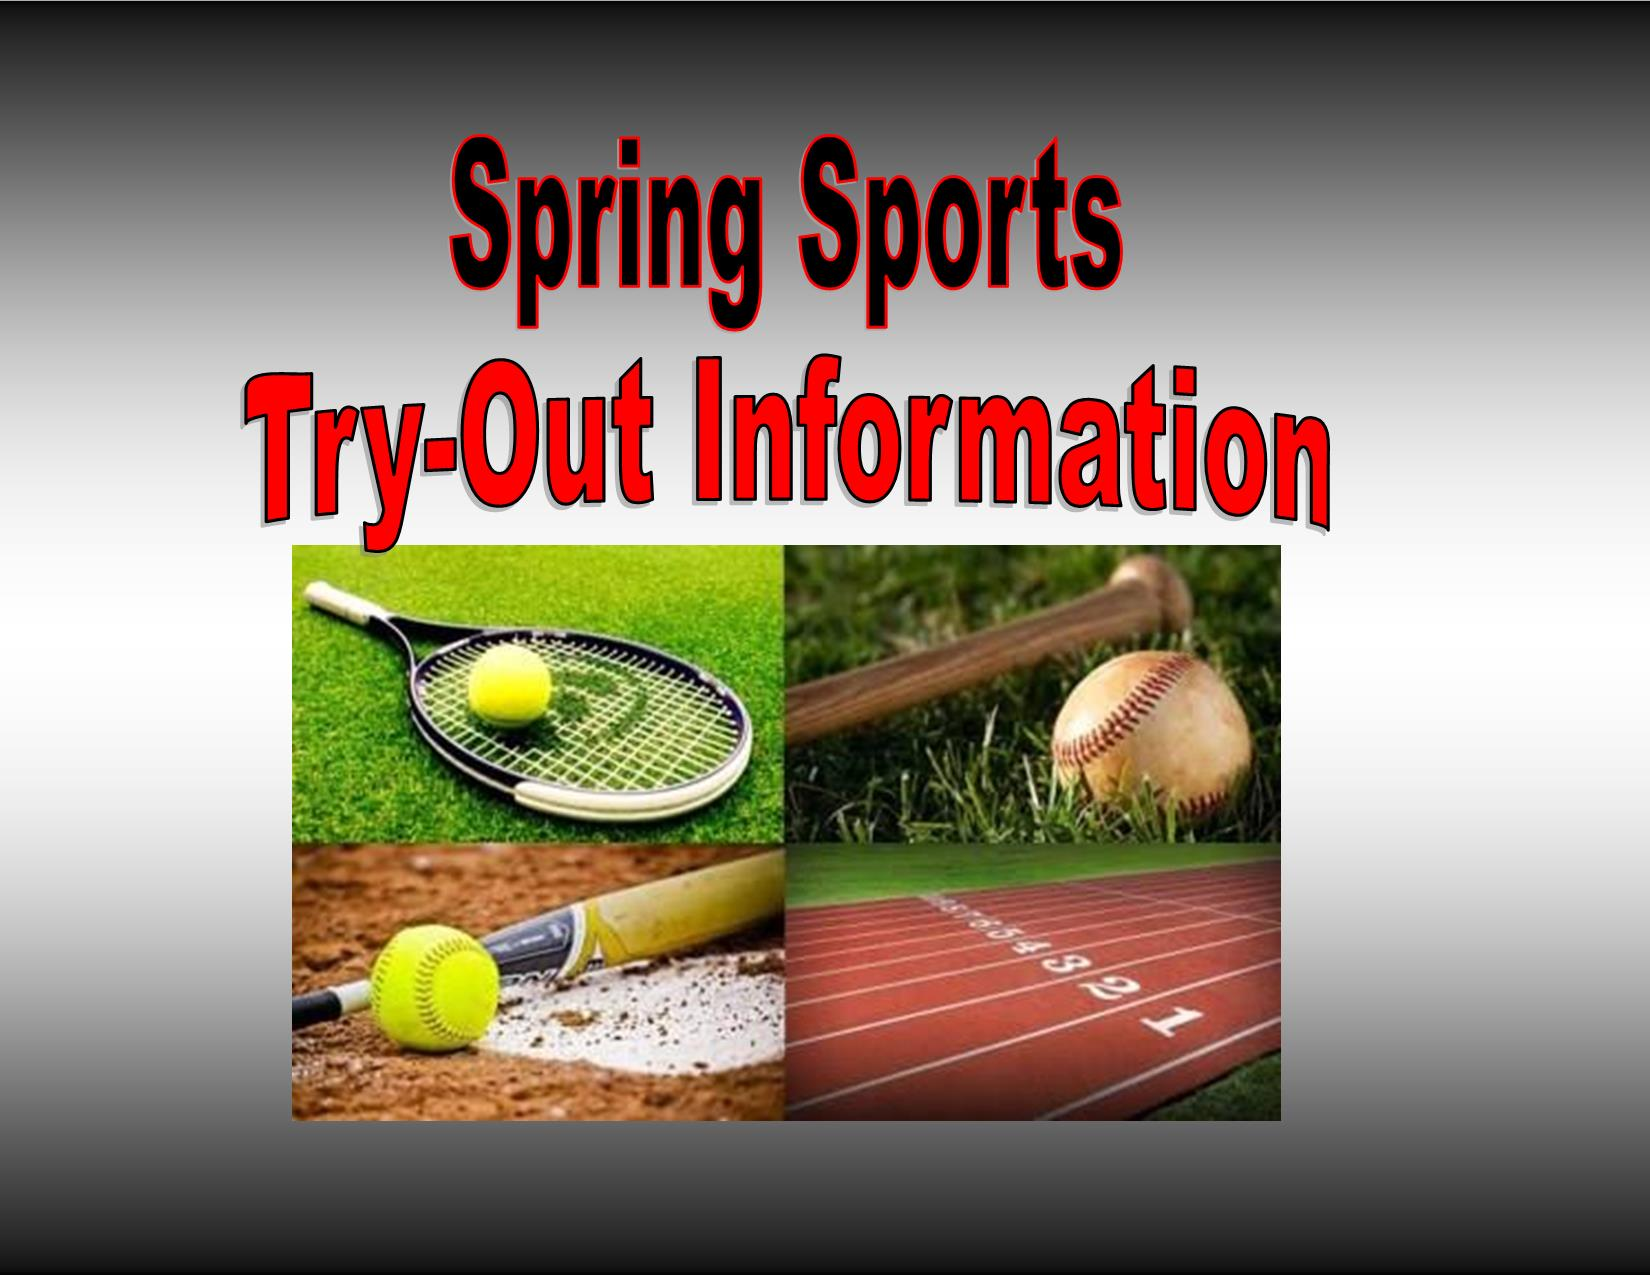 Spring Sports Try-Out Information